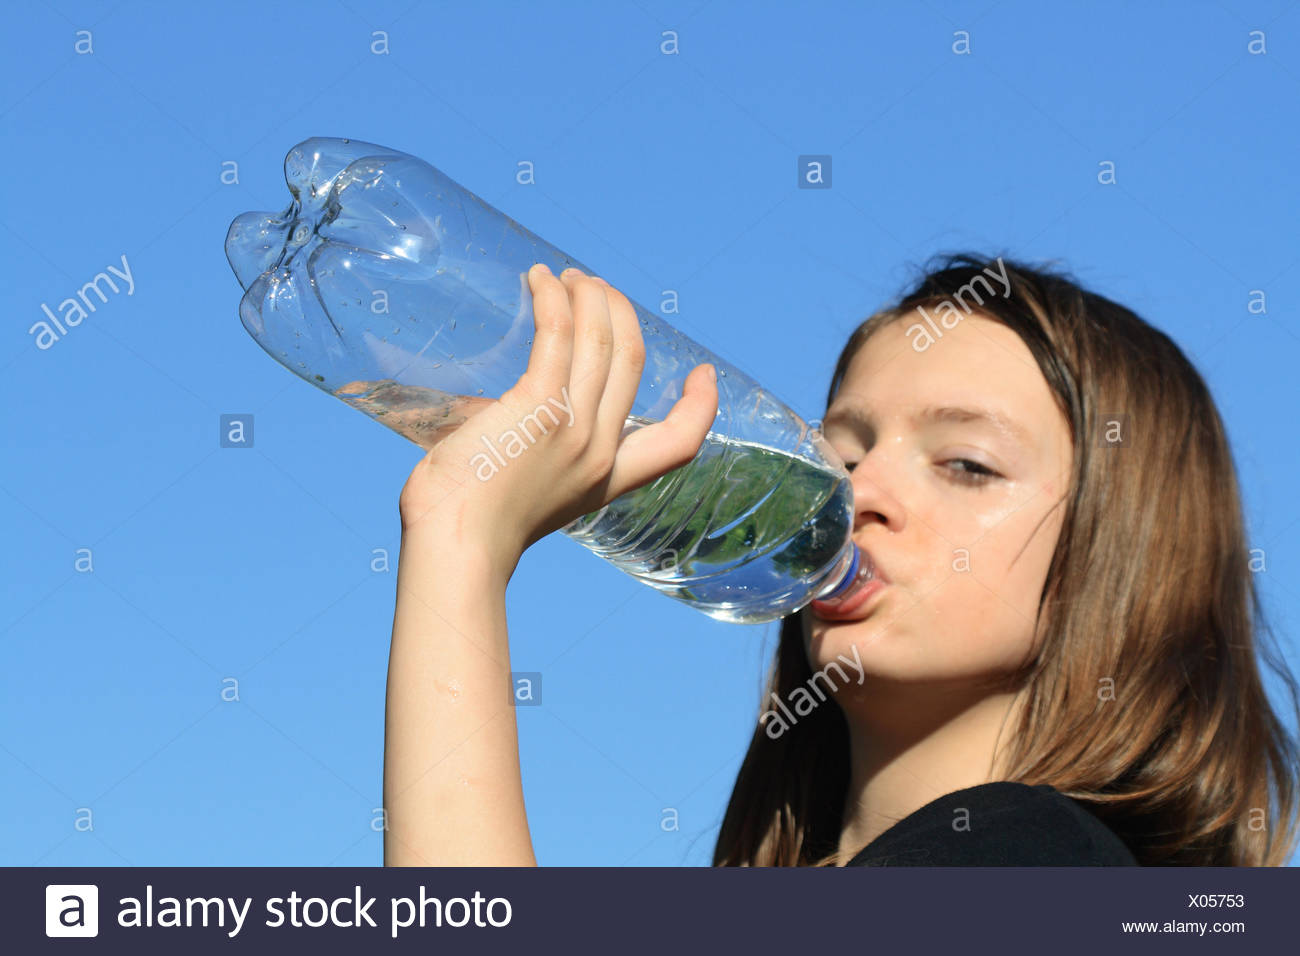 Thirst - Stock Image